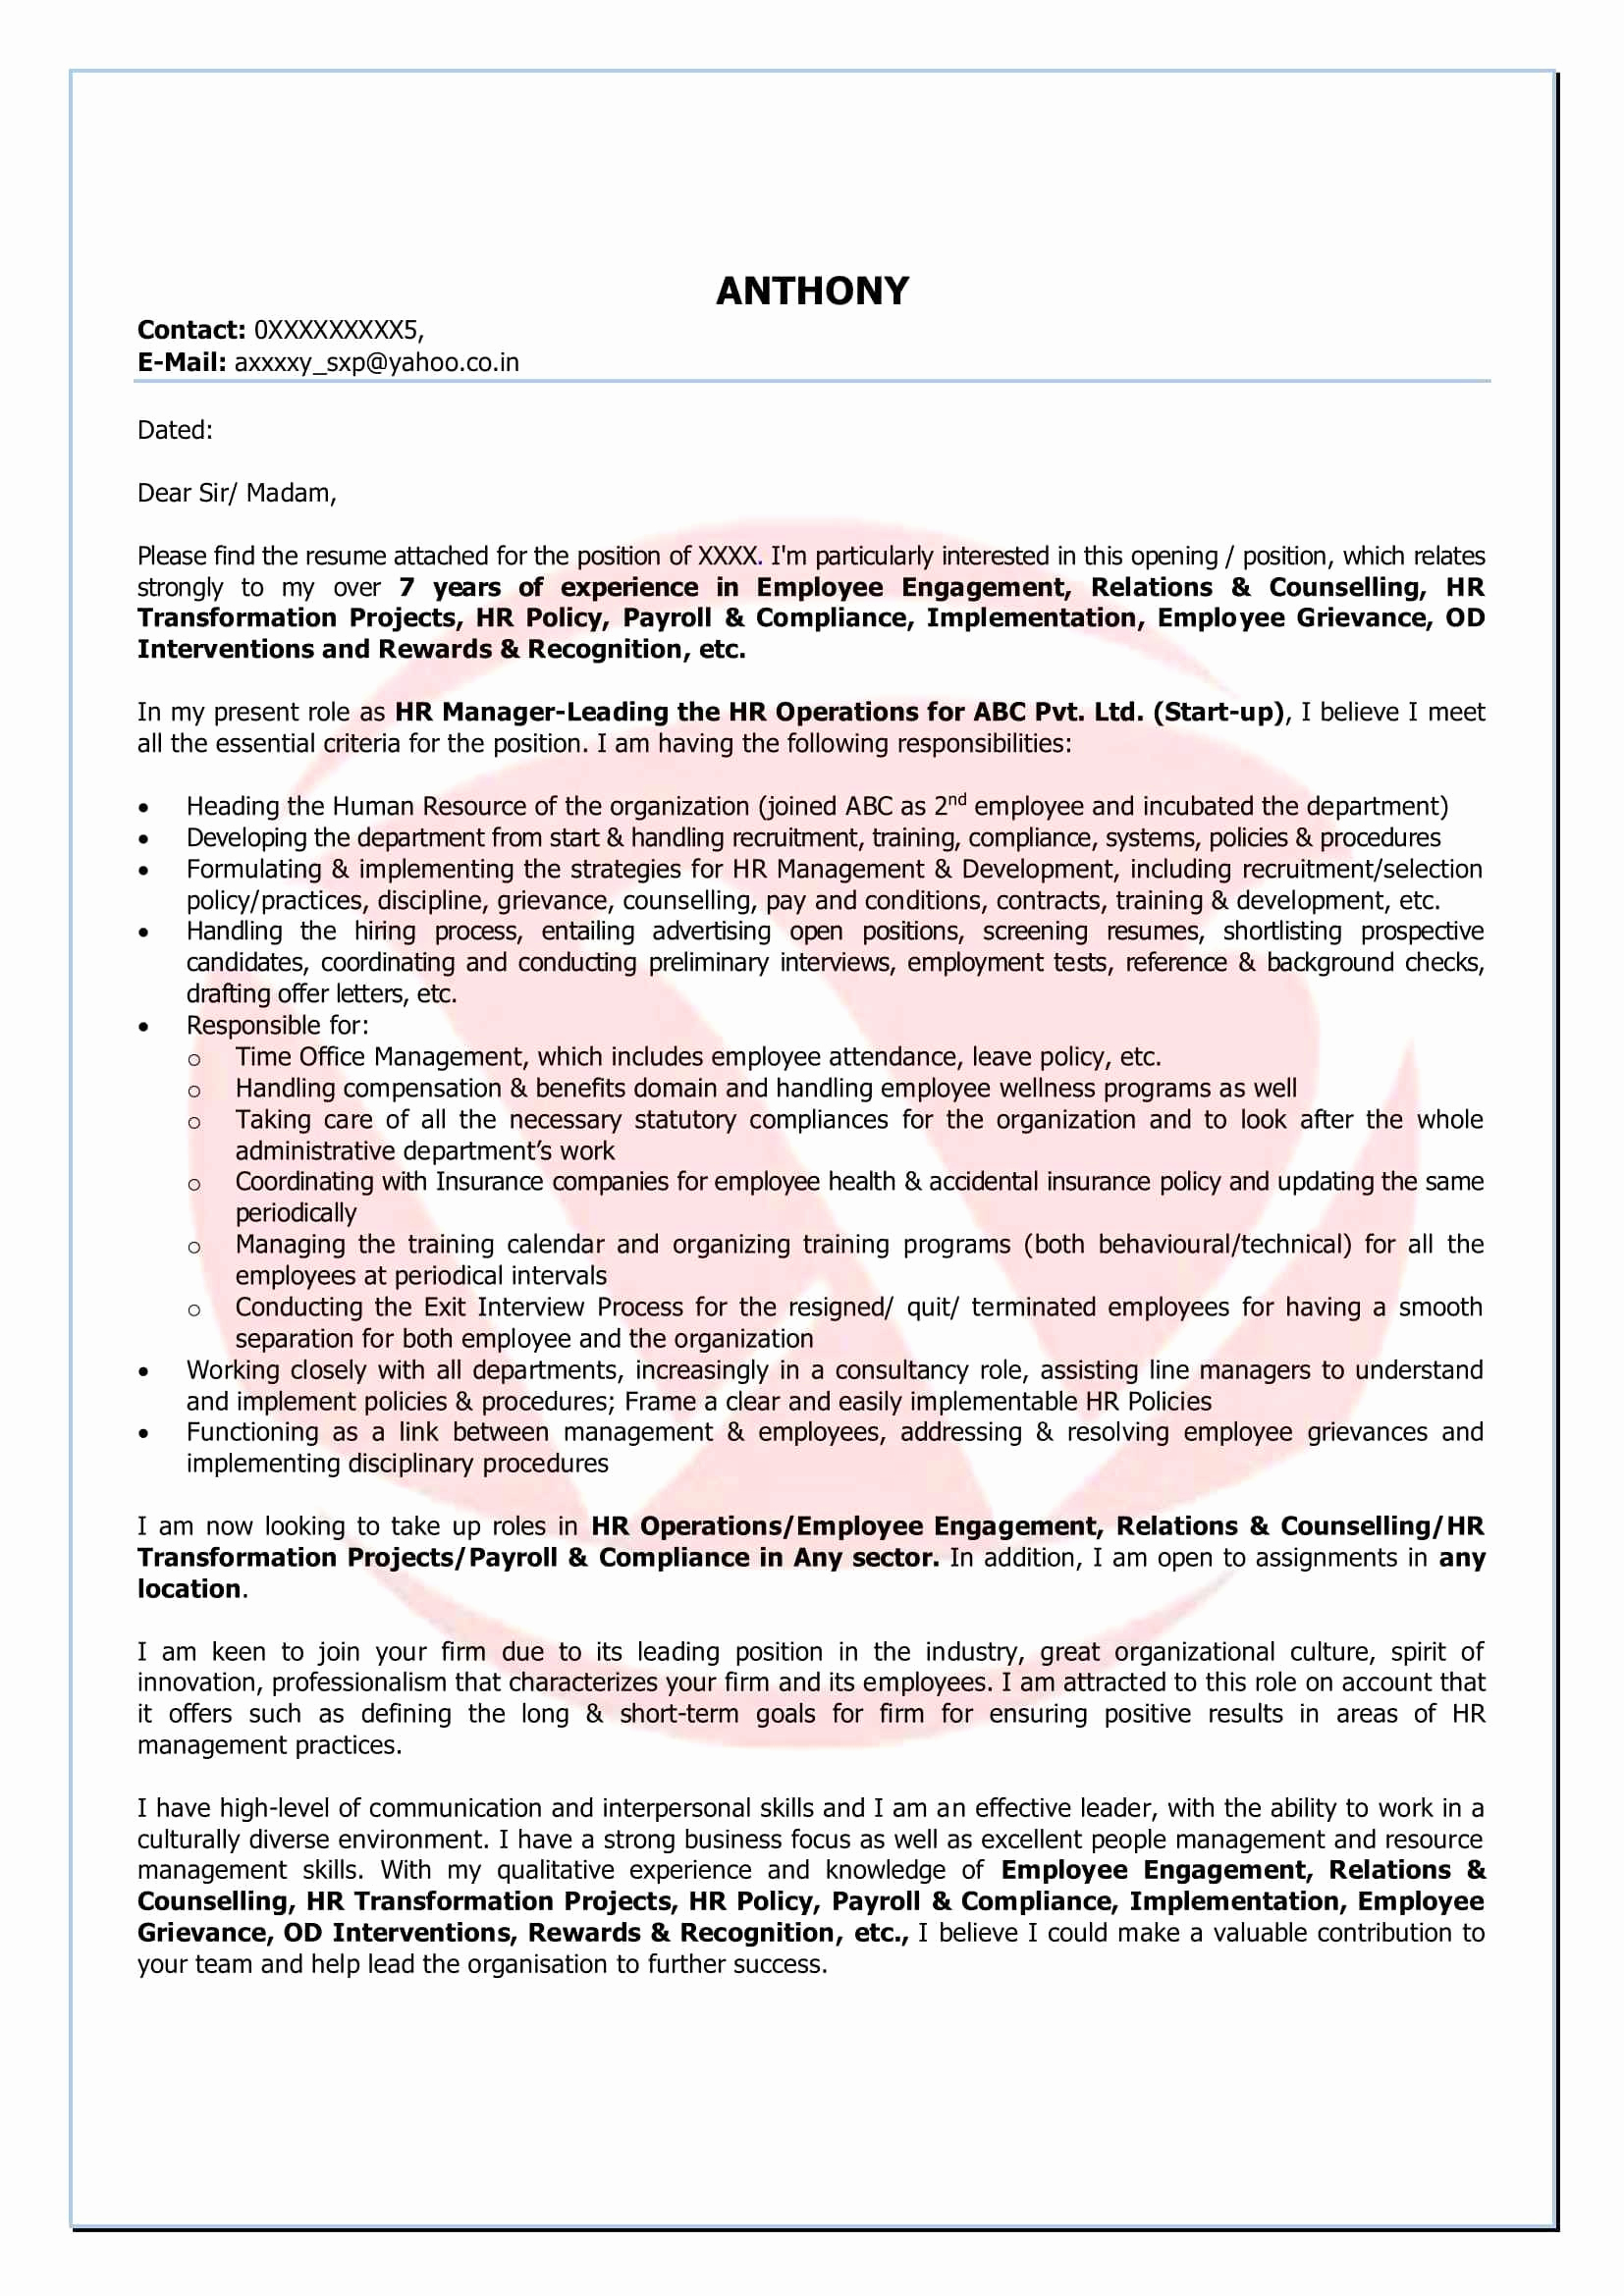 Sports Management Resume - Resumes for Bank Teller Sports Resume Best Sports Management Resume